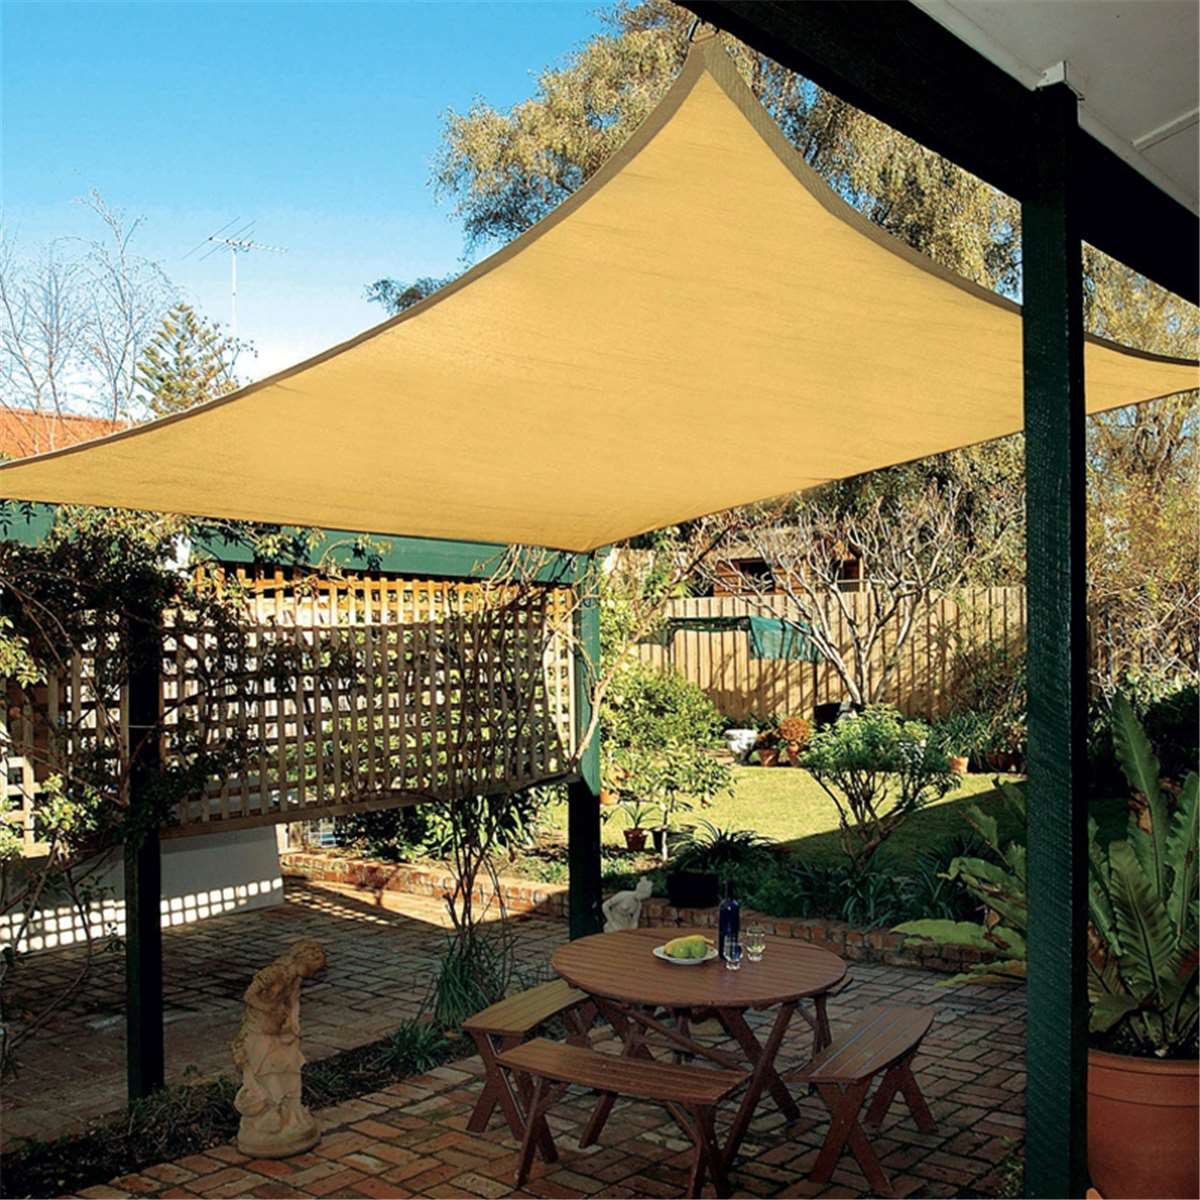 UV Protection Polyester Sun Shade Sail 6X4m Outdoor Garden Top Canopy Cover Patio Pool Coffee Shop Awning Supplies Rectangle-in Awnings from Home u0026 Garden ... & UV Protection Polyester Sun Shade Sail 6X4m Outdoor Garden Top ...